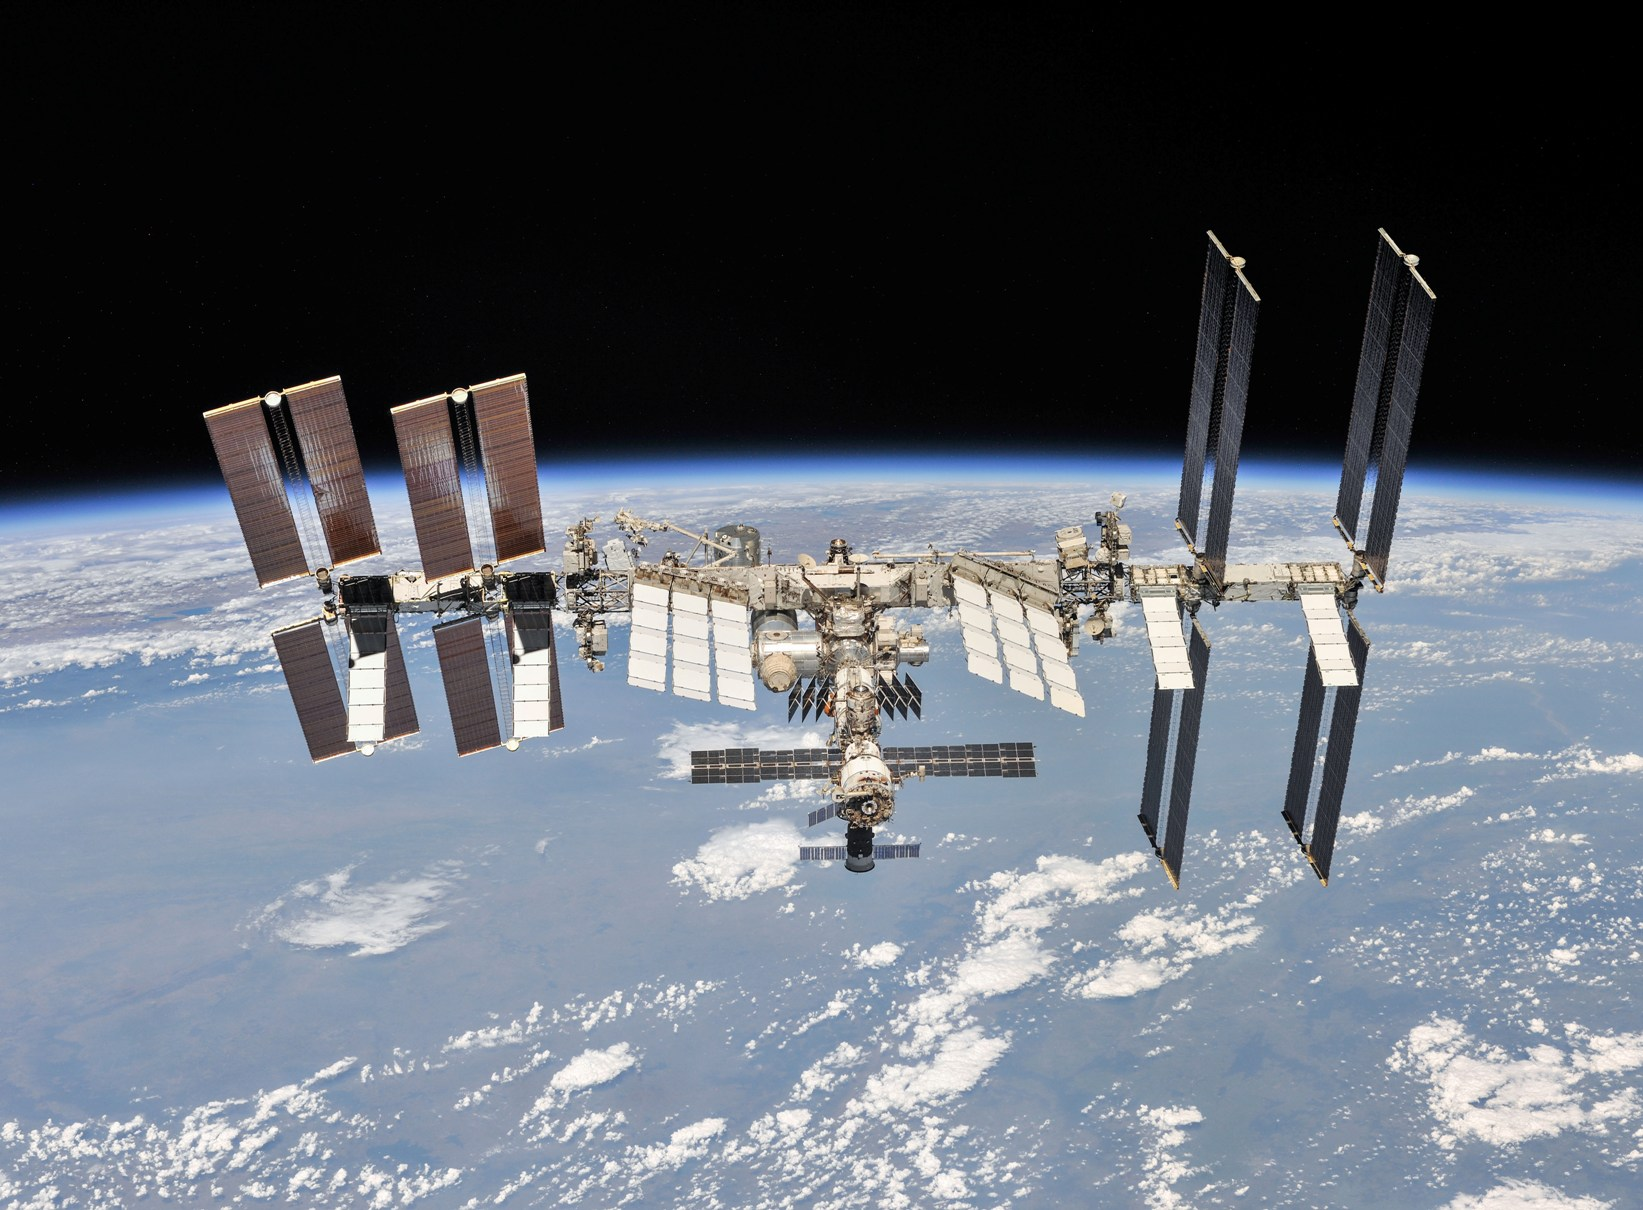 Microsoft and HPE team up to connect Azure cloud to International Space Station